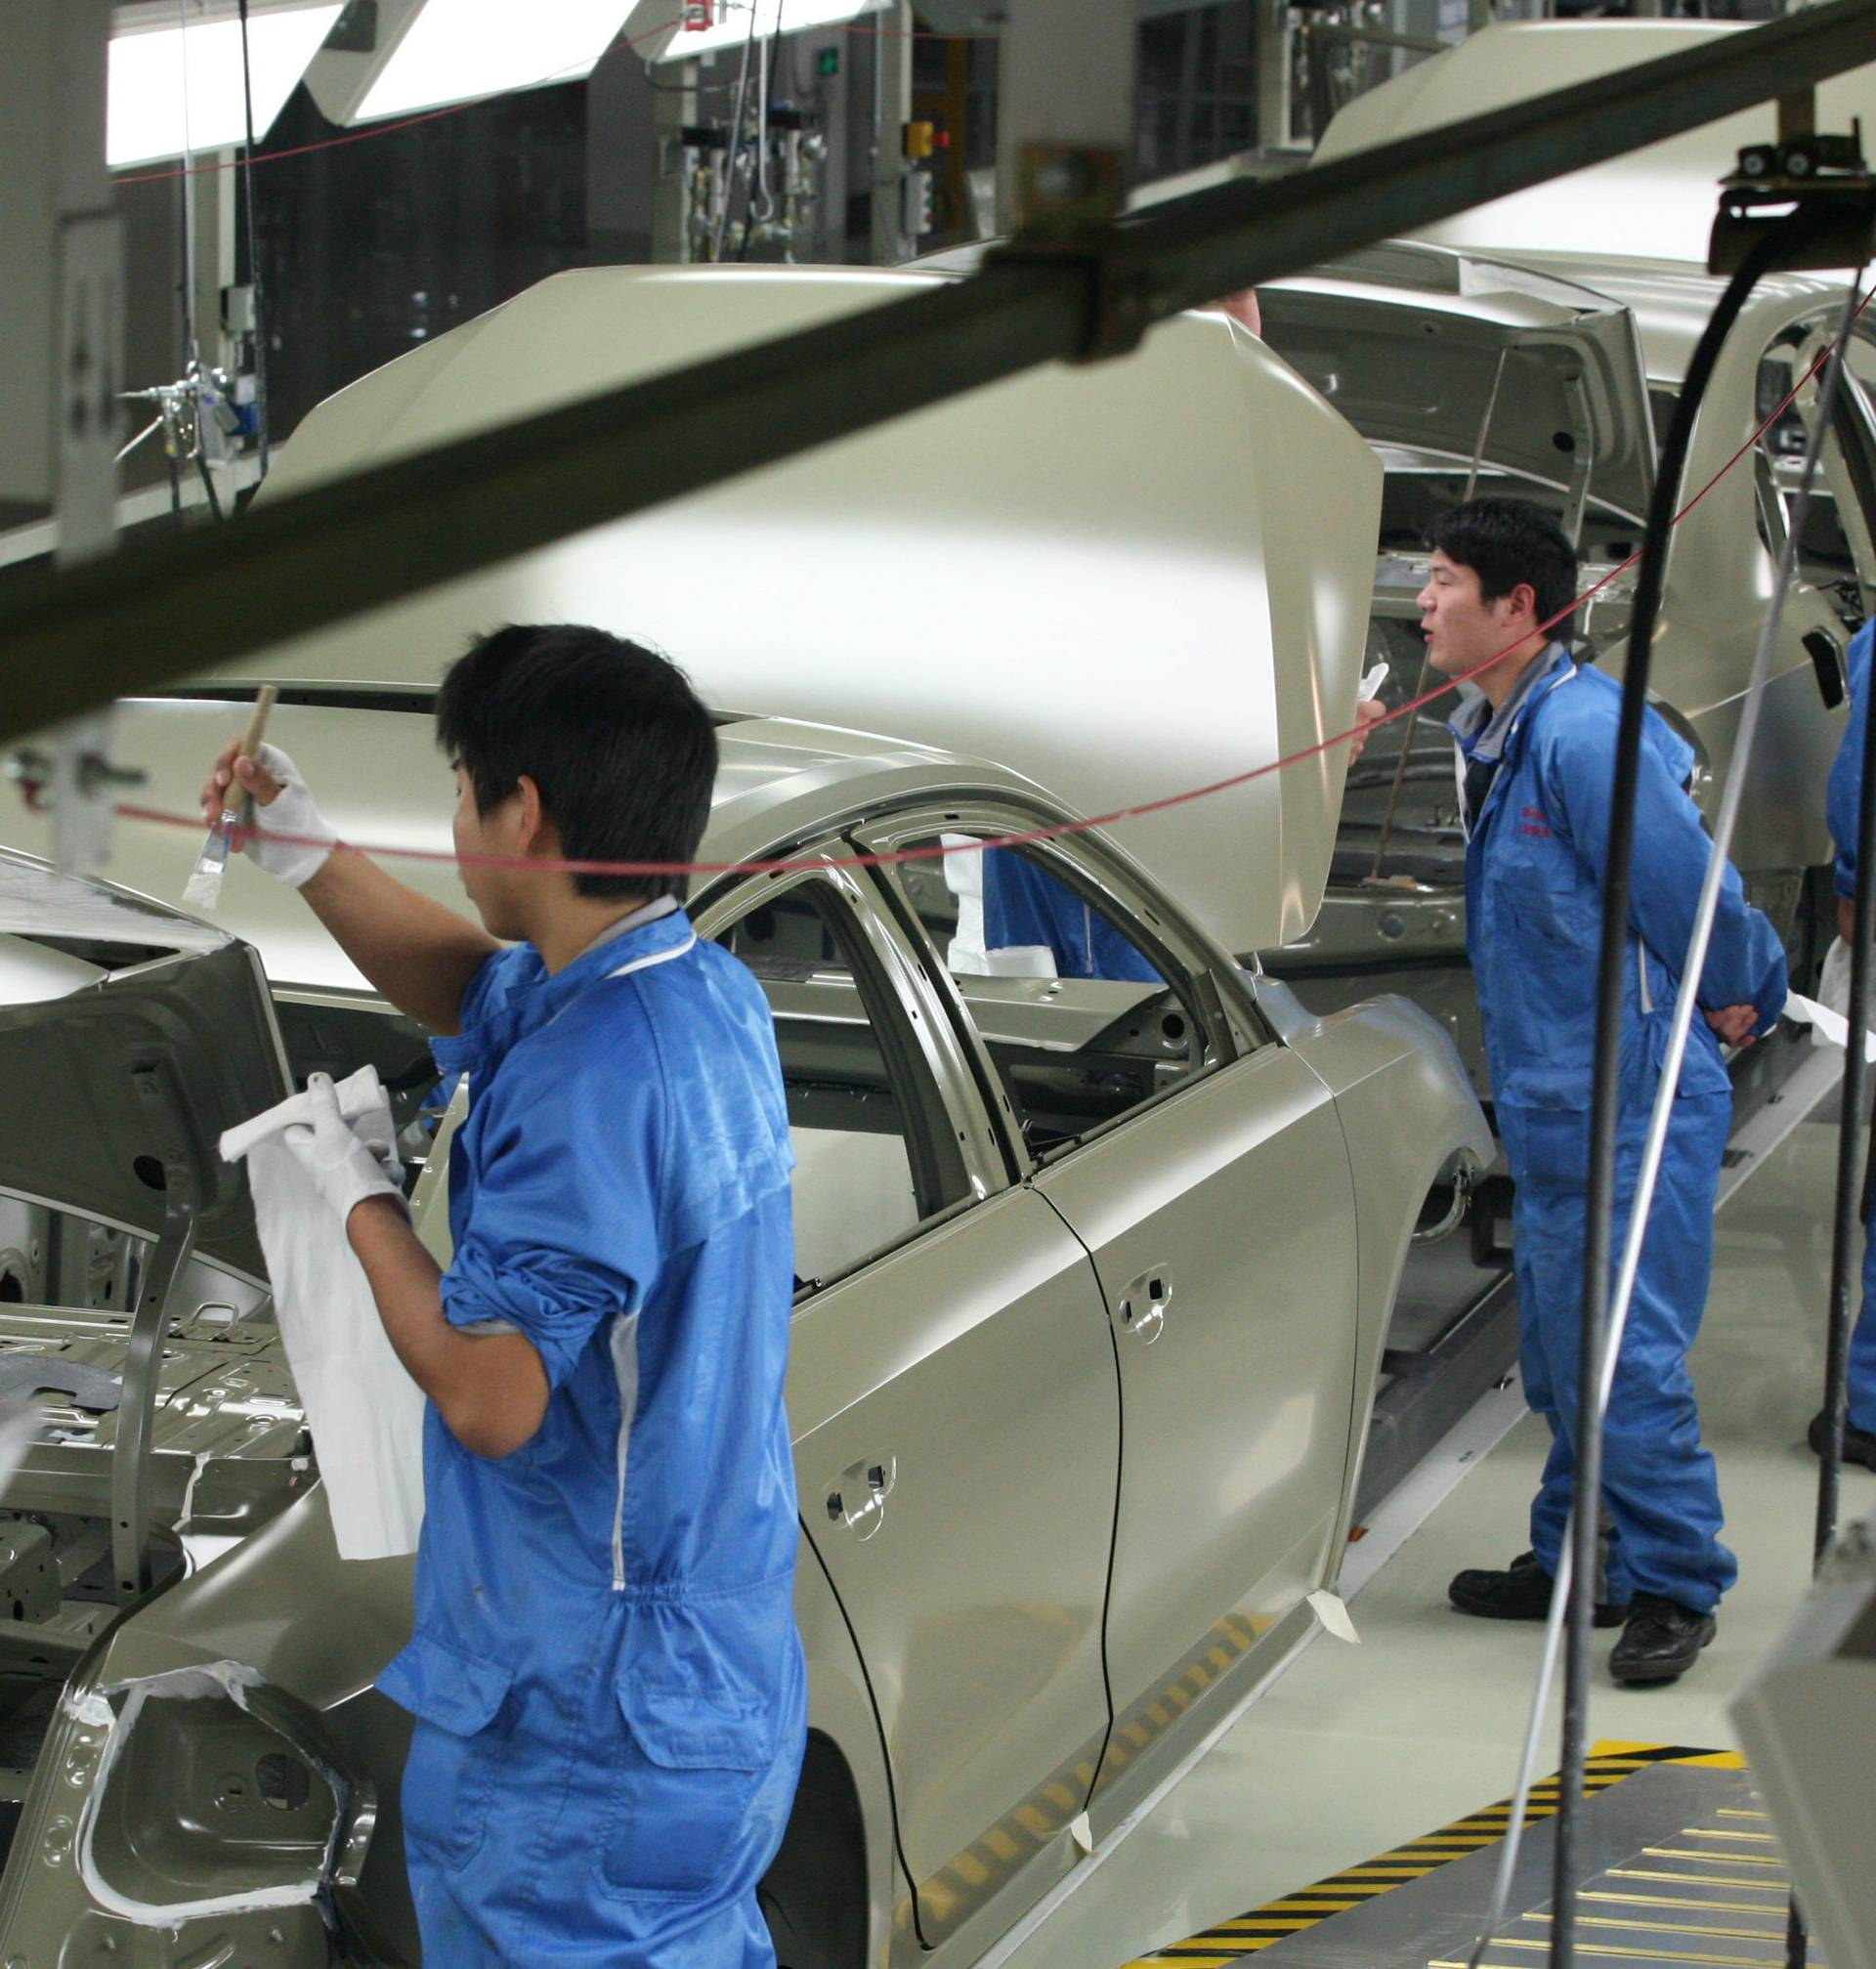 Production at Duerr in China